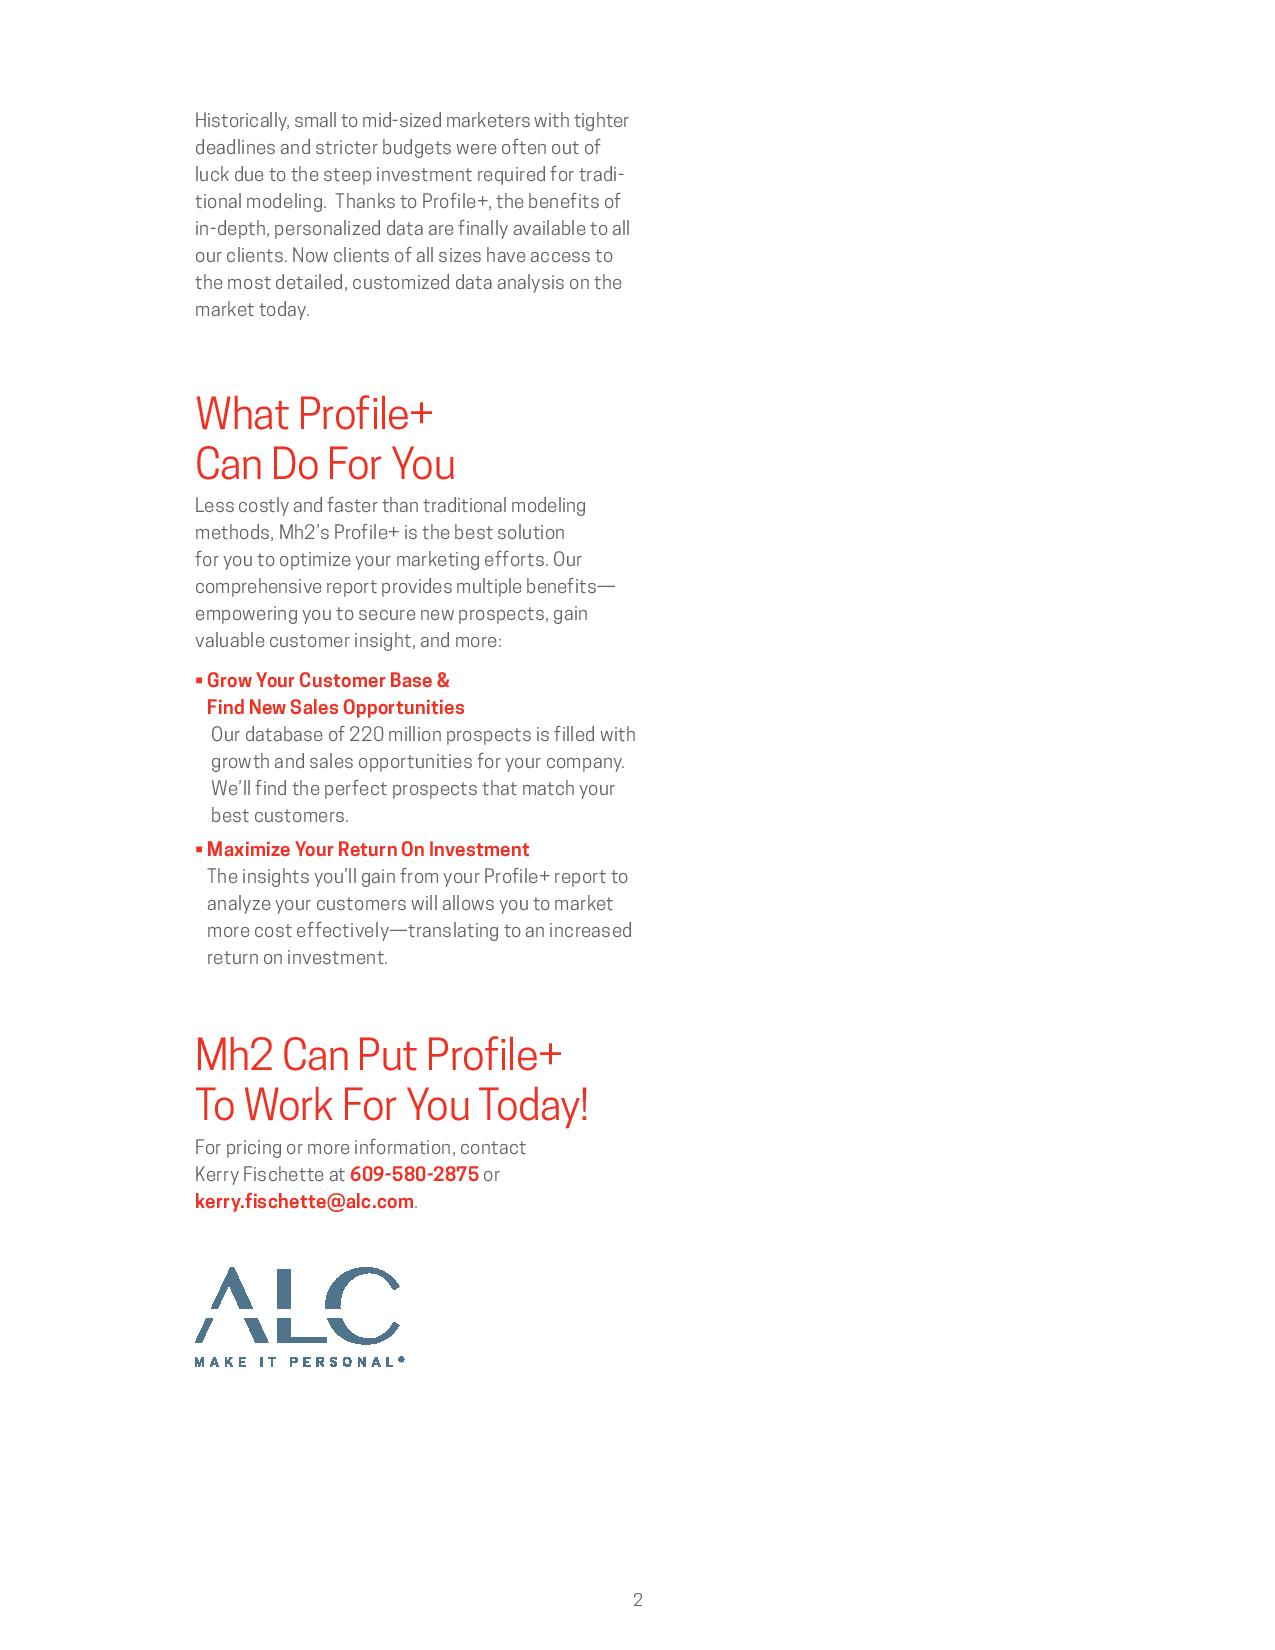 ALC_Mh2-Whitepaper-page-003.jpg